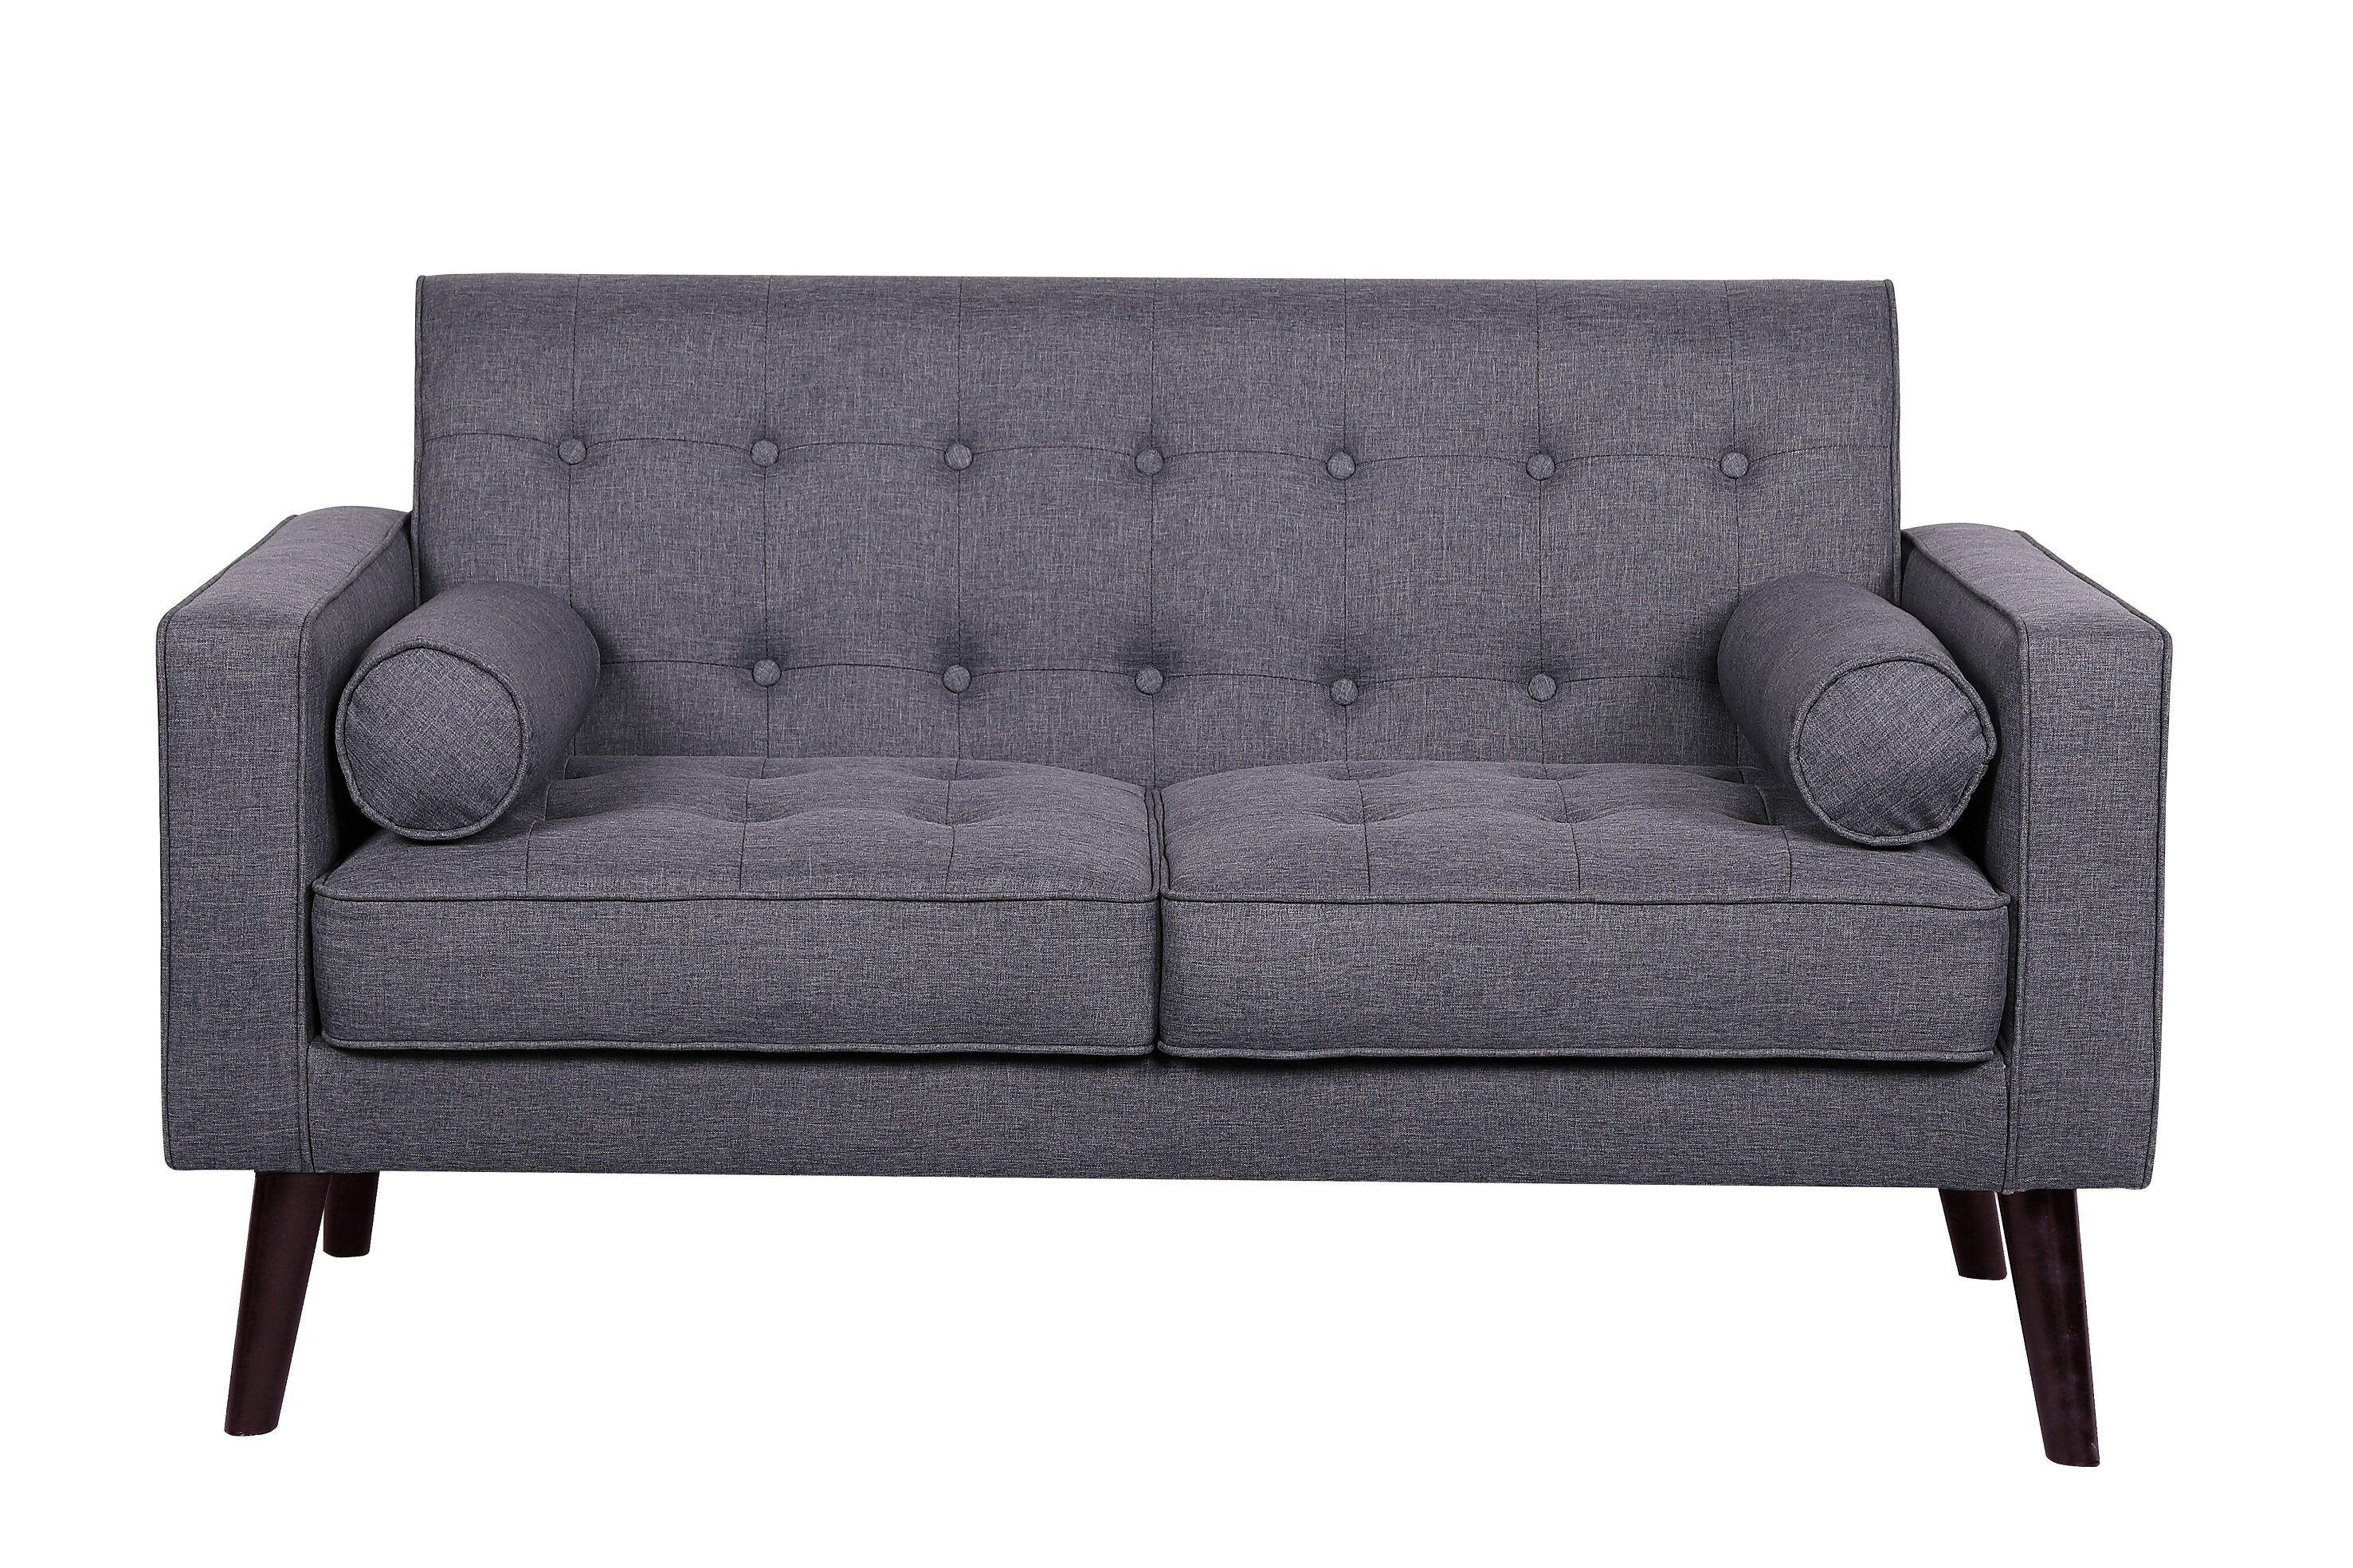 couch sectionals white sofas sale wrap light full futon comfortable tufted recliners sectional couches chaise brown sofa of with and room leather living black modern l reclining around best blue size microfiber arrange set for loveseat high velvet small back grey